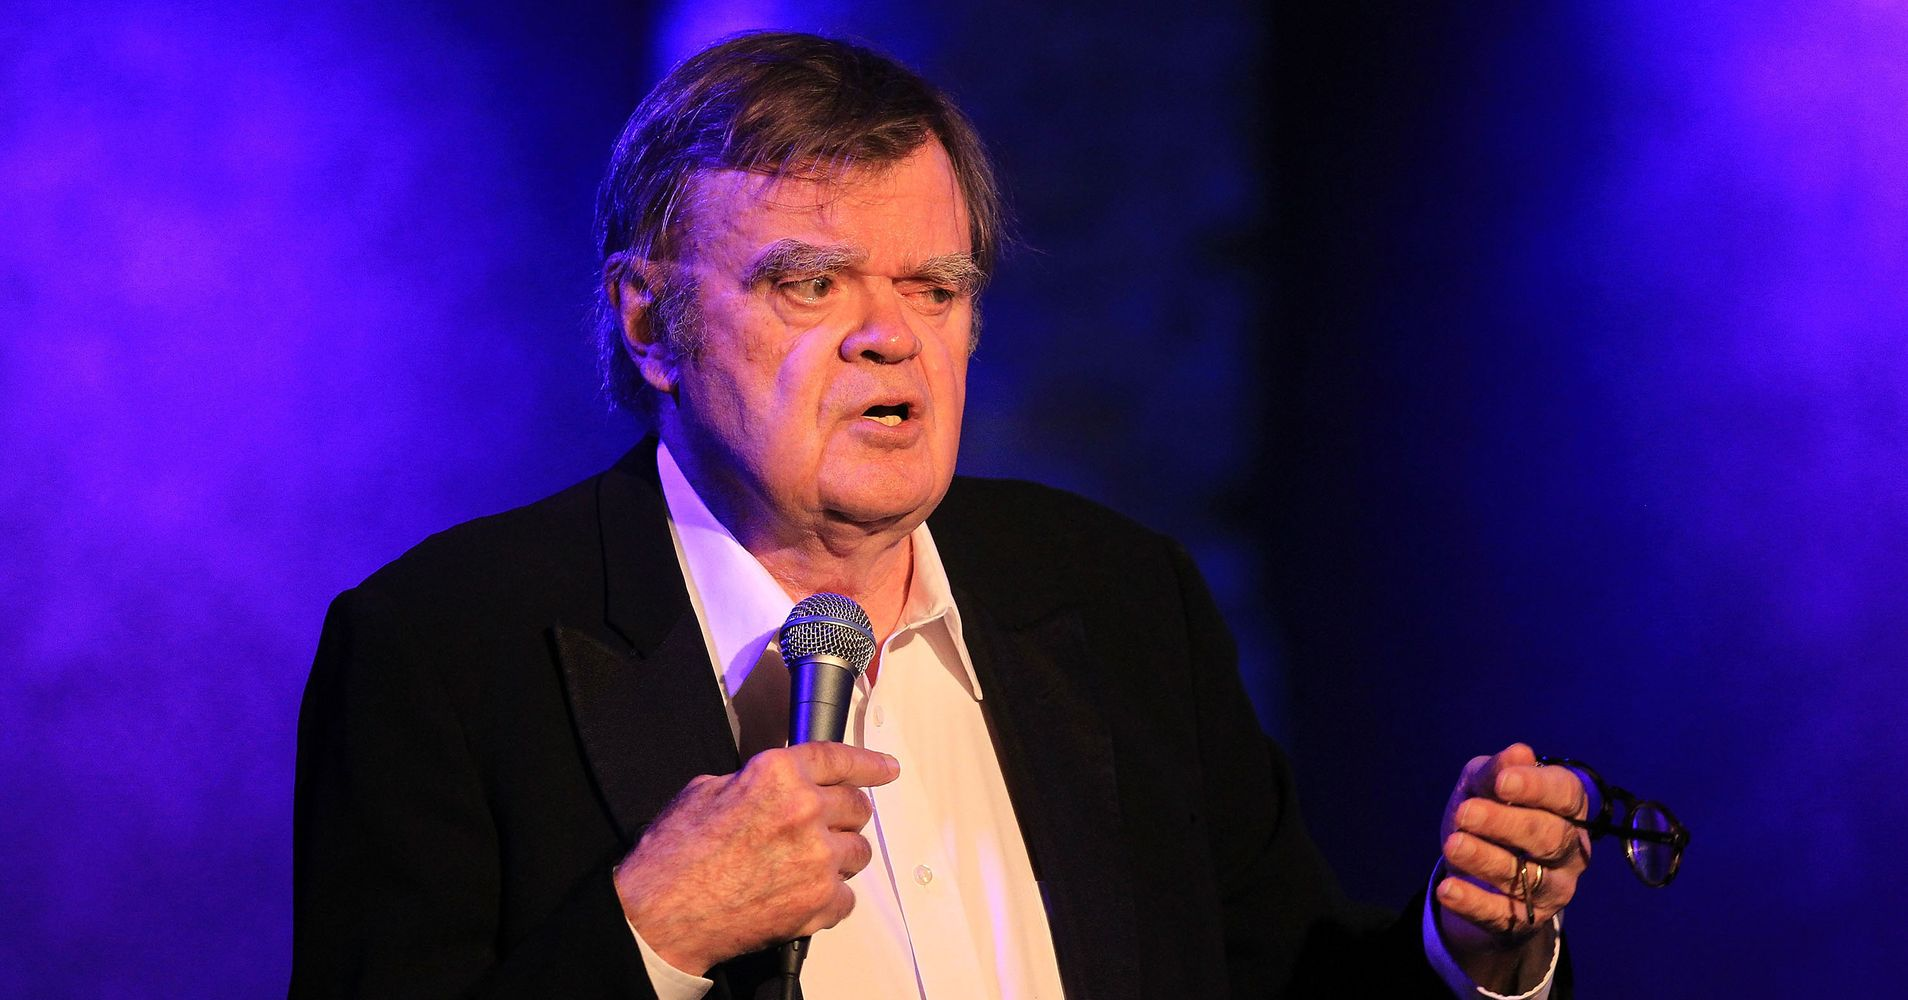 Garrison Keillor Was Fired For Touching A Woman's Back, But He May Have Done More: MPR News